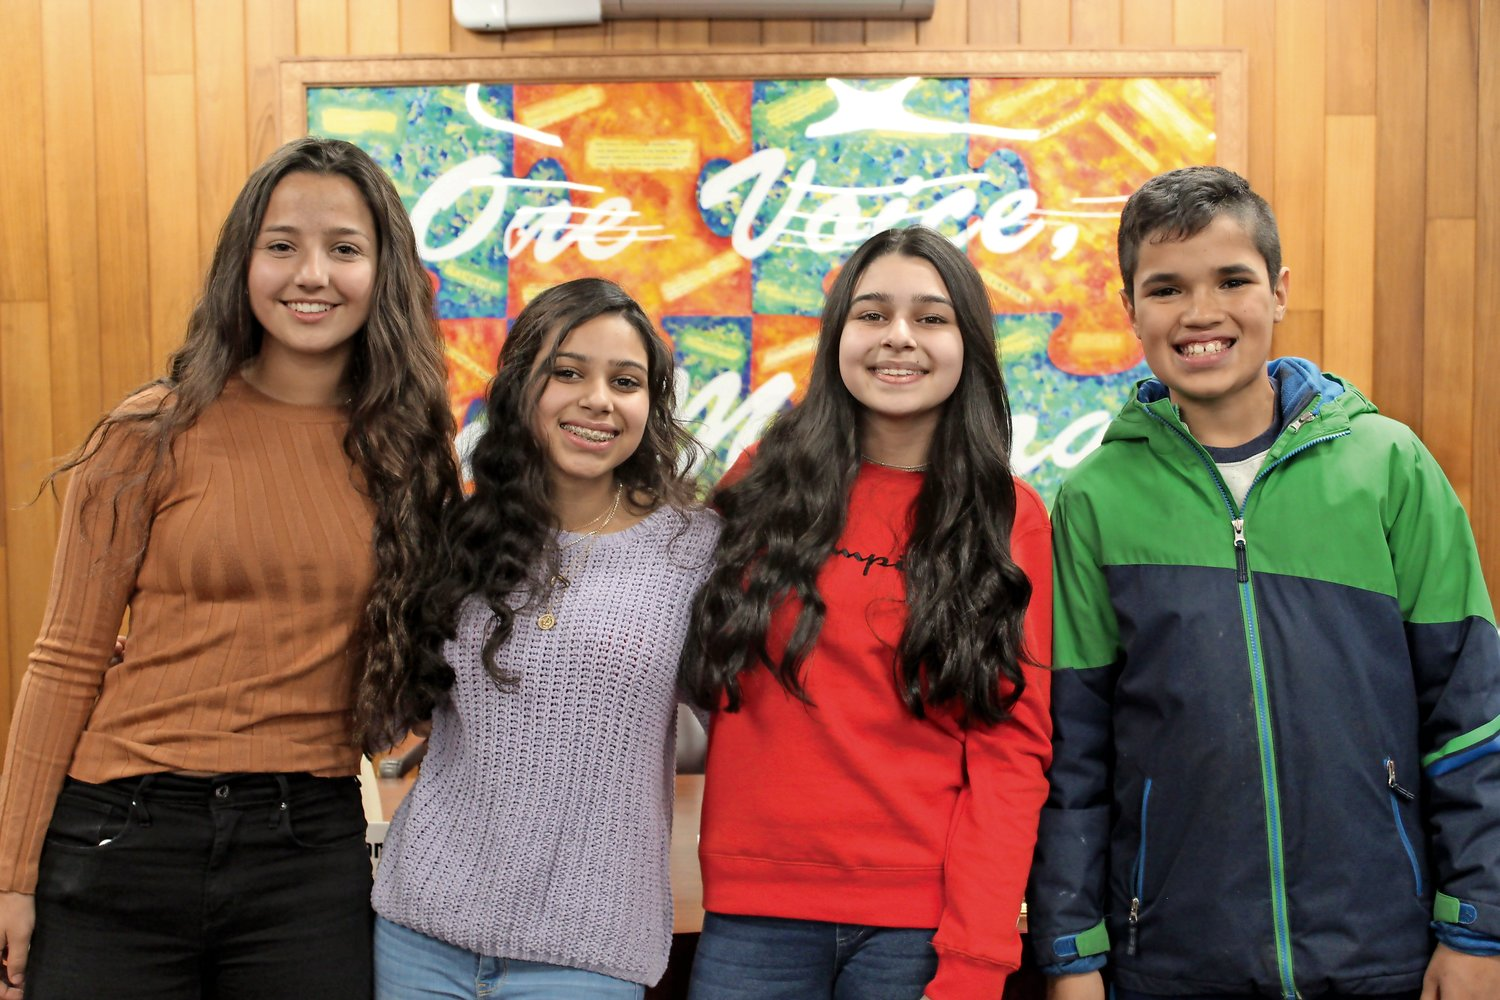 Merry Tuurmann, left, Alisha and Summer Marfani and Amir Ibrahim attended Bellmore-Merrick Central High School District's Board of Education meeting on Dec. 4, and implored the board to add Eid al-Fitr and Eid al-Adha, two Muslim holidays, to the school calendar.